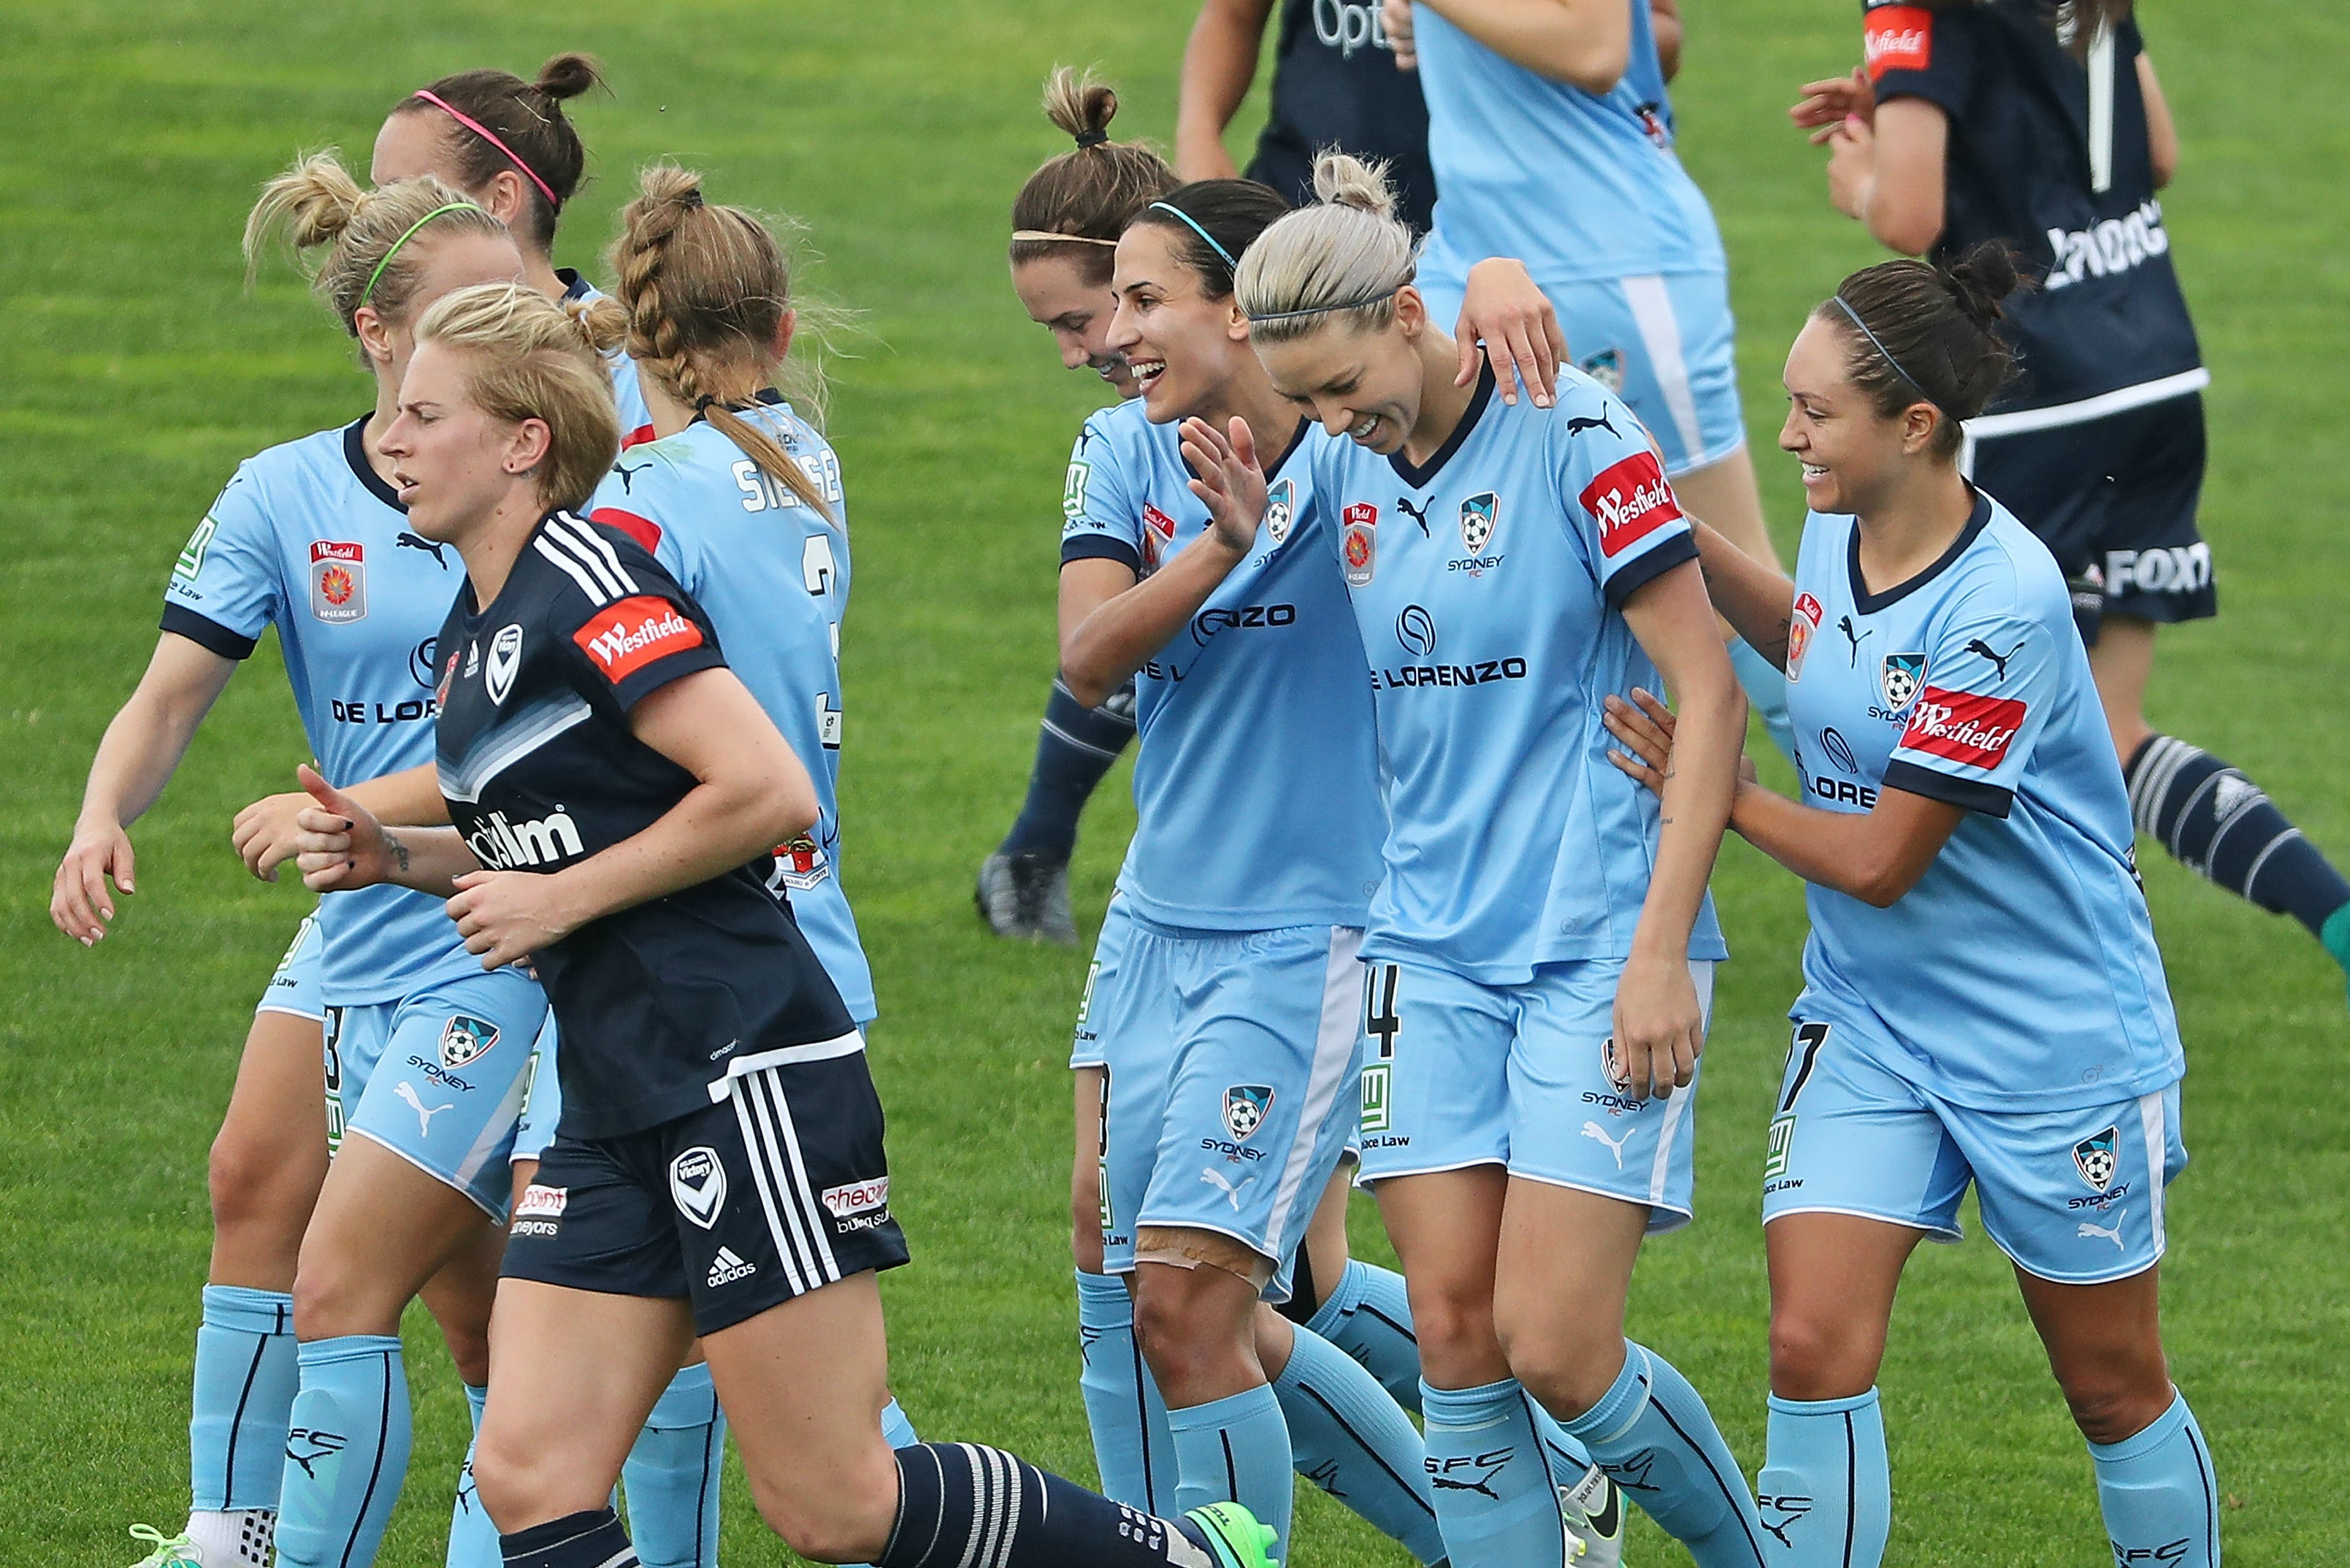 Sydney FC assembled a star-studded roster in the 2015/16 Season.